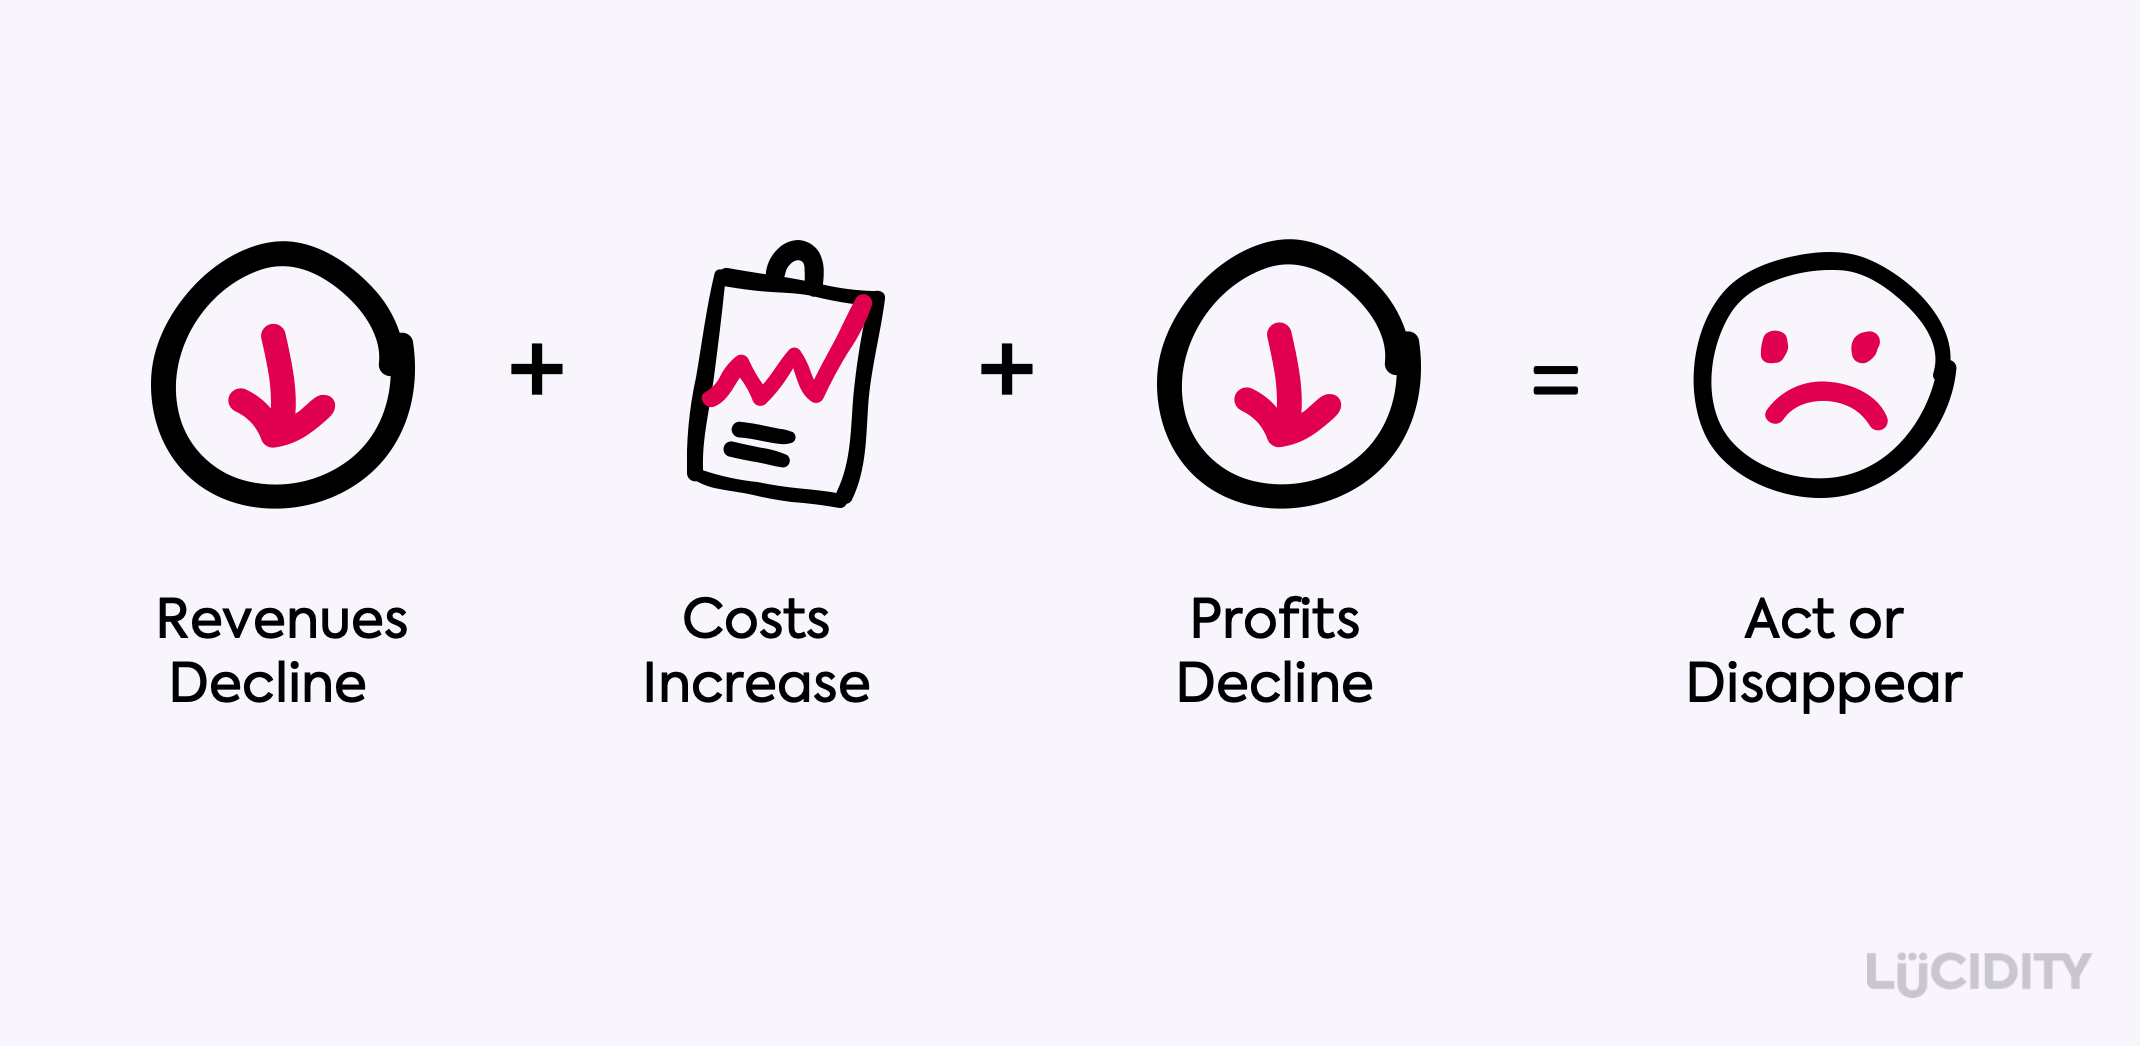 Revenue Decline + Cost Increase + Profit Decline = Act or Disappear